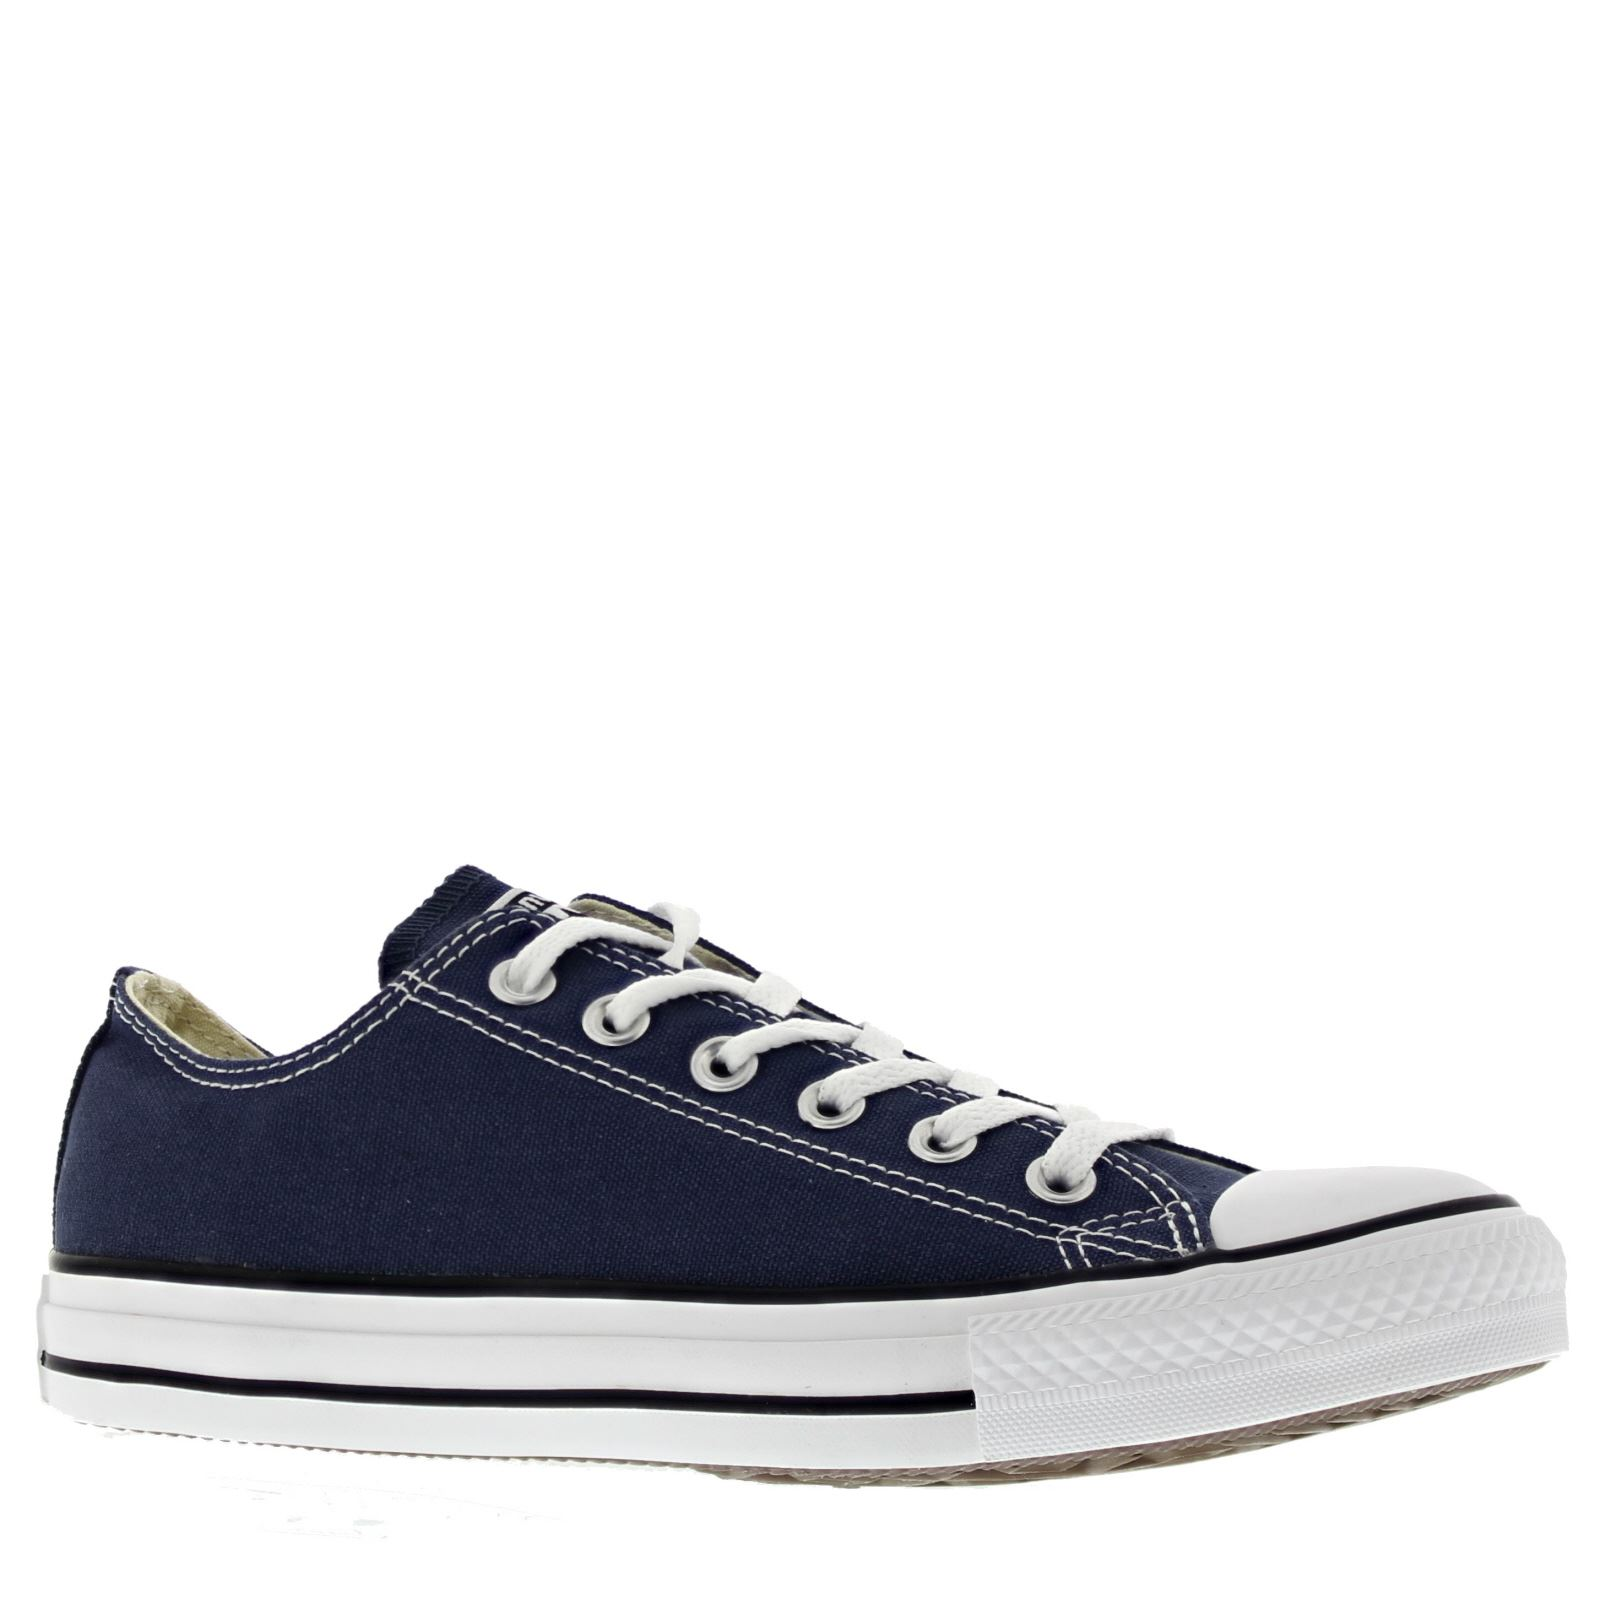 33c2ce50a2e4f7 Converse Chuck Taylor All Star Ox Lowtop Navy Canvas Mens Trainers Sneakers